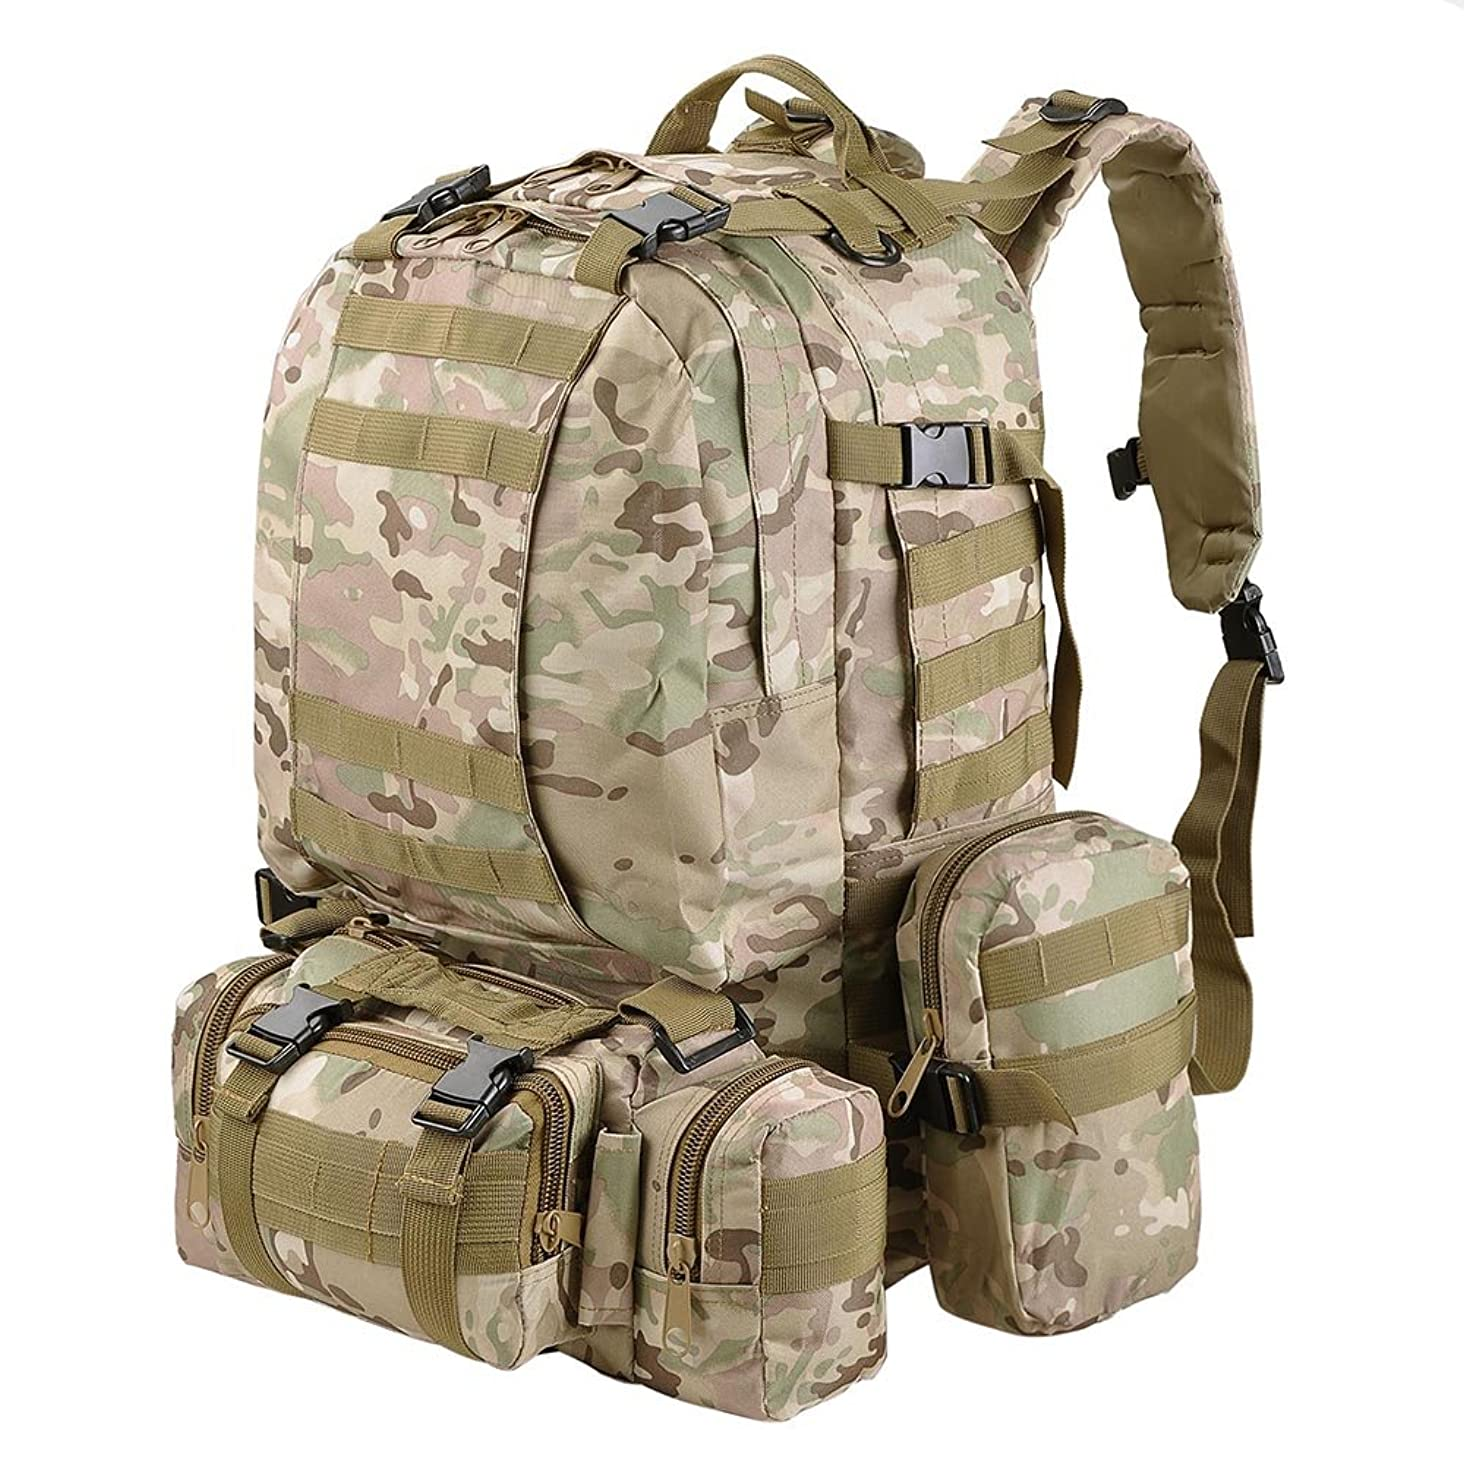 AW 55L 600D Oxford Military Tactical Army Rucksacks Molle Backpack Camping Outdoor Hiking Trekking Traveling Bag